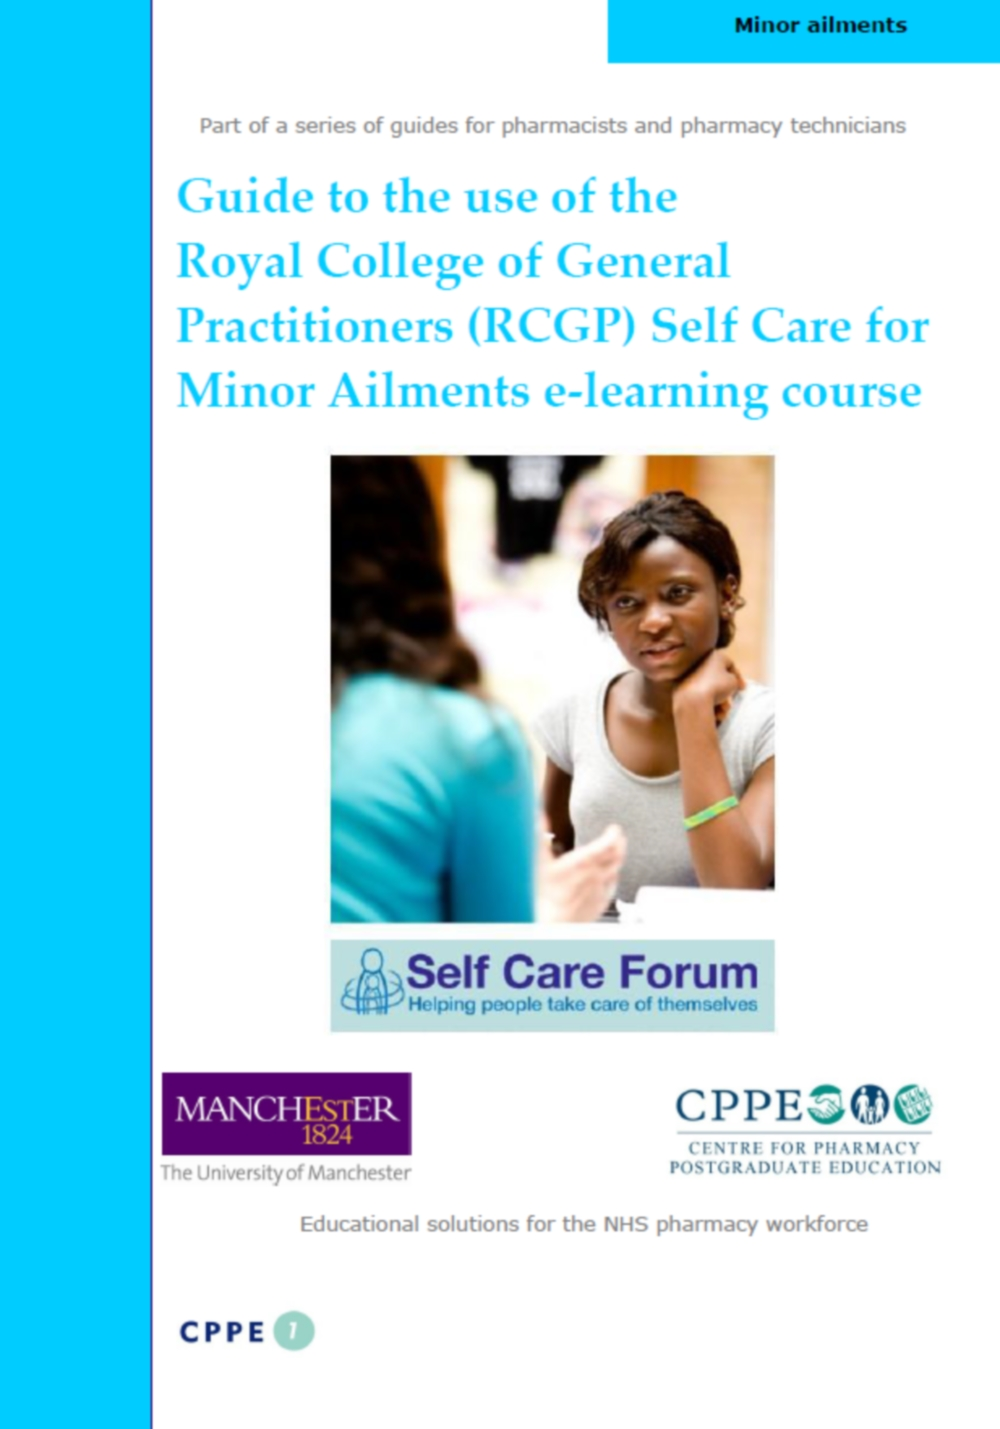 Guide published to help pharmacy make the most of the RCGP e-learning course on self care for minor ailments